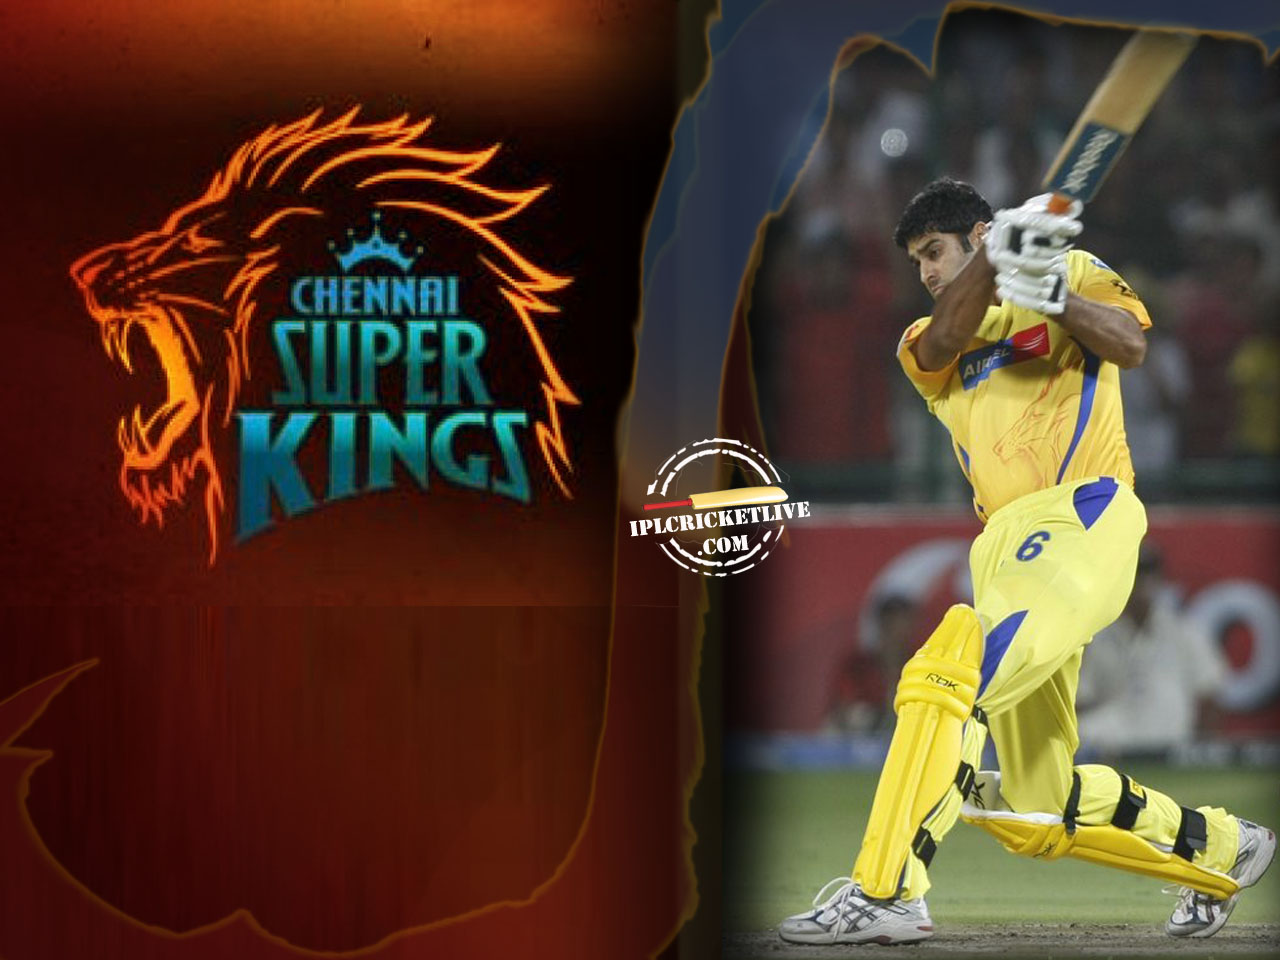 IPL Chennai SuperKings Wallpaper